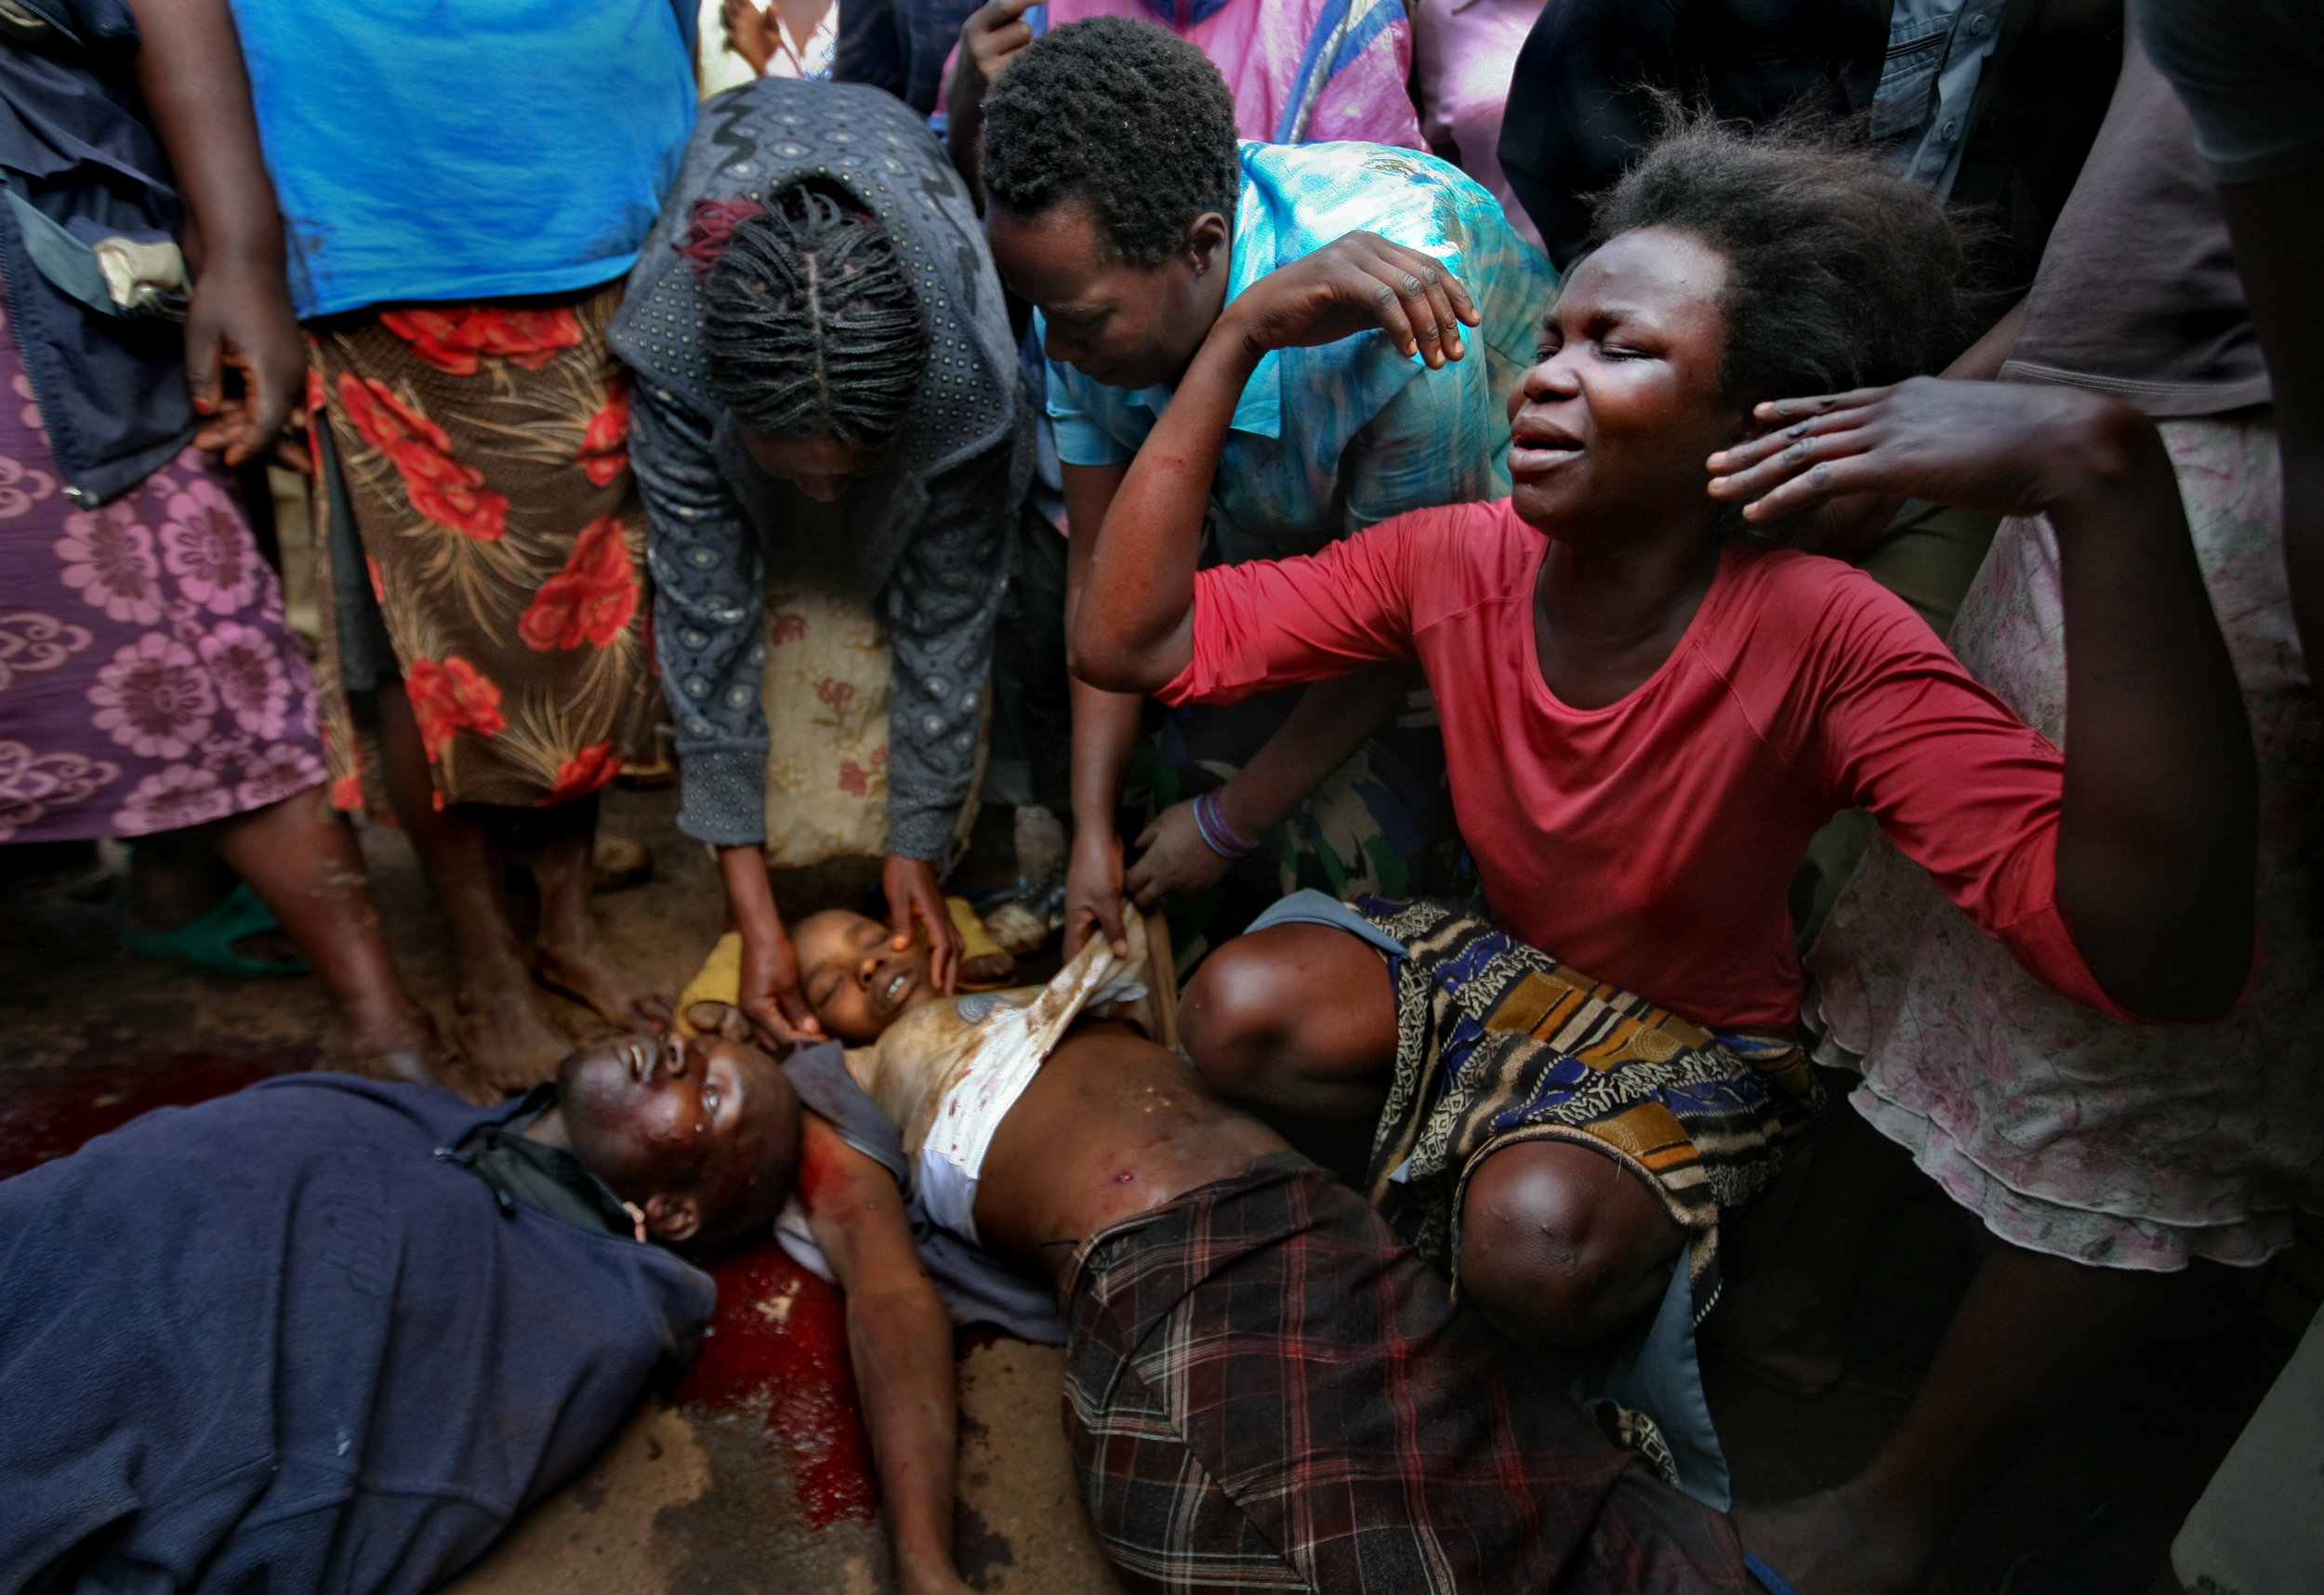 Kibera residents mourn over the bodies of two people just shot dead during opposition protests in Nairobi's Kibera slum. At least eight people were killed that day in violence.